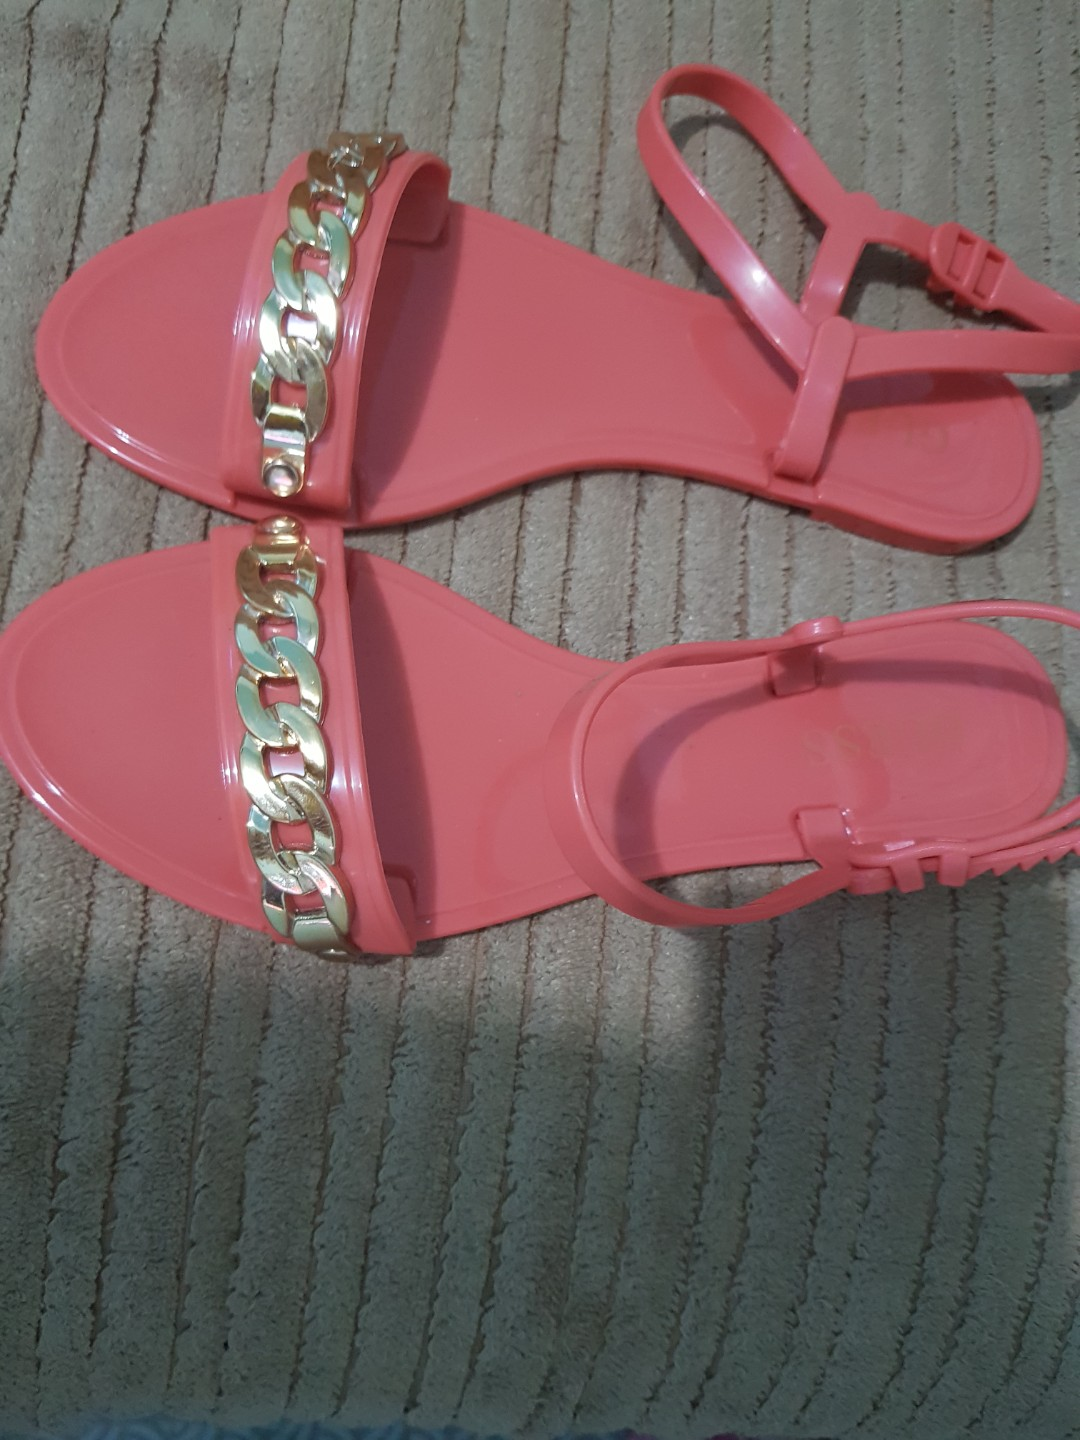 996ad8fd4 Guess jelly sandals size 7